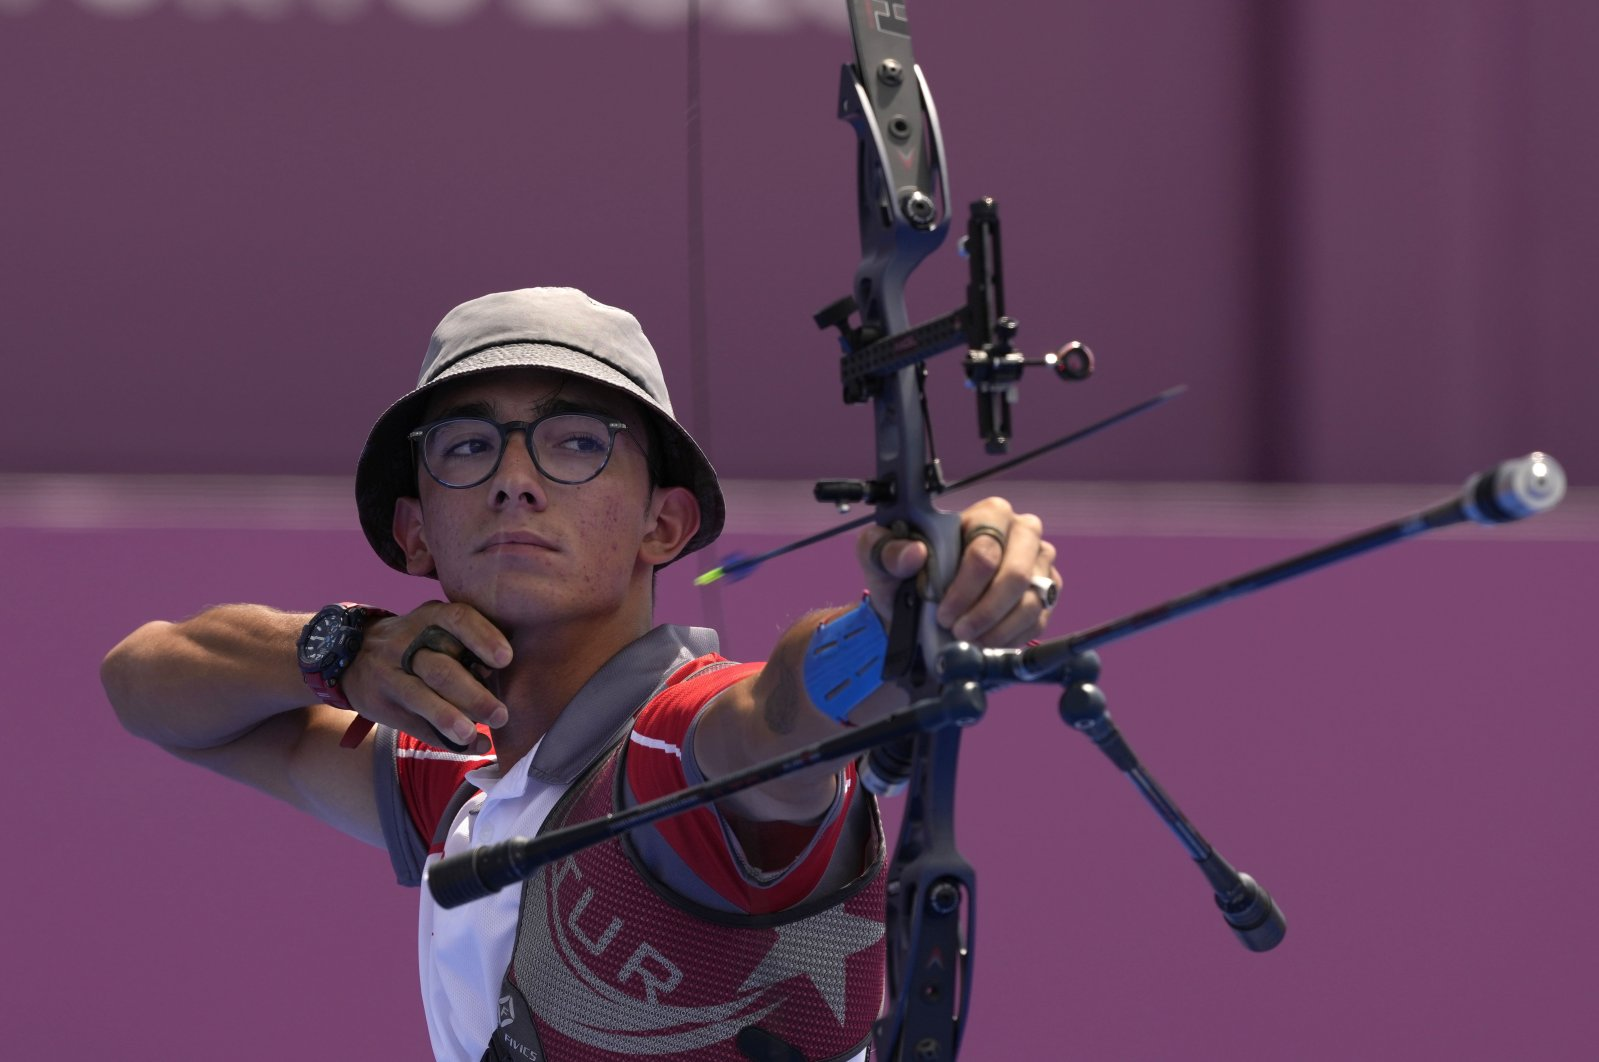 Turkey's Mete Gazoz shoots an arrow during the individual eliminations at the 2020 Summer Olympics, in Tokyo, Japan, July 29, 2021. (AP Photo)